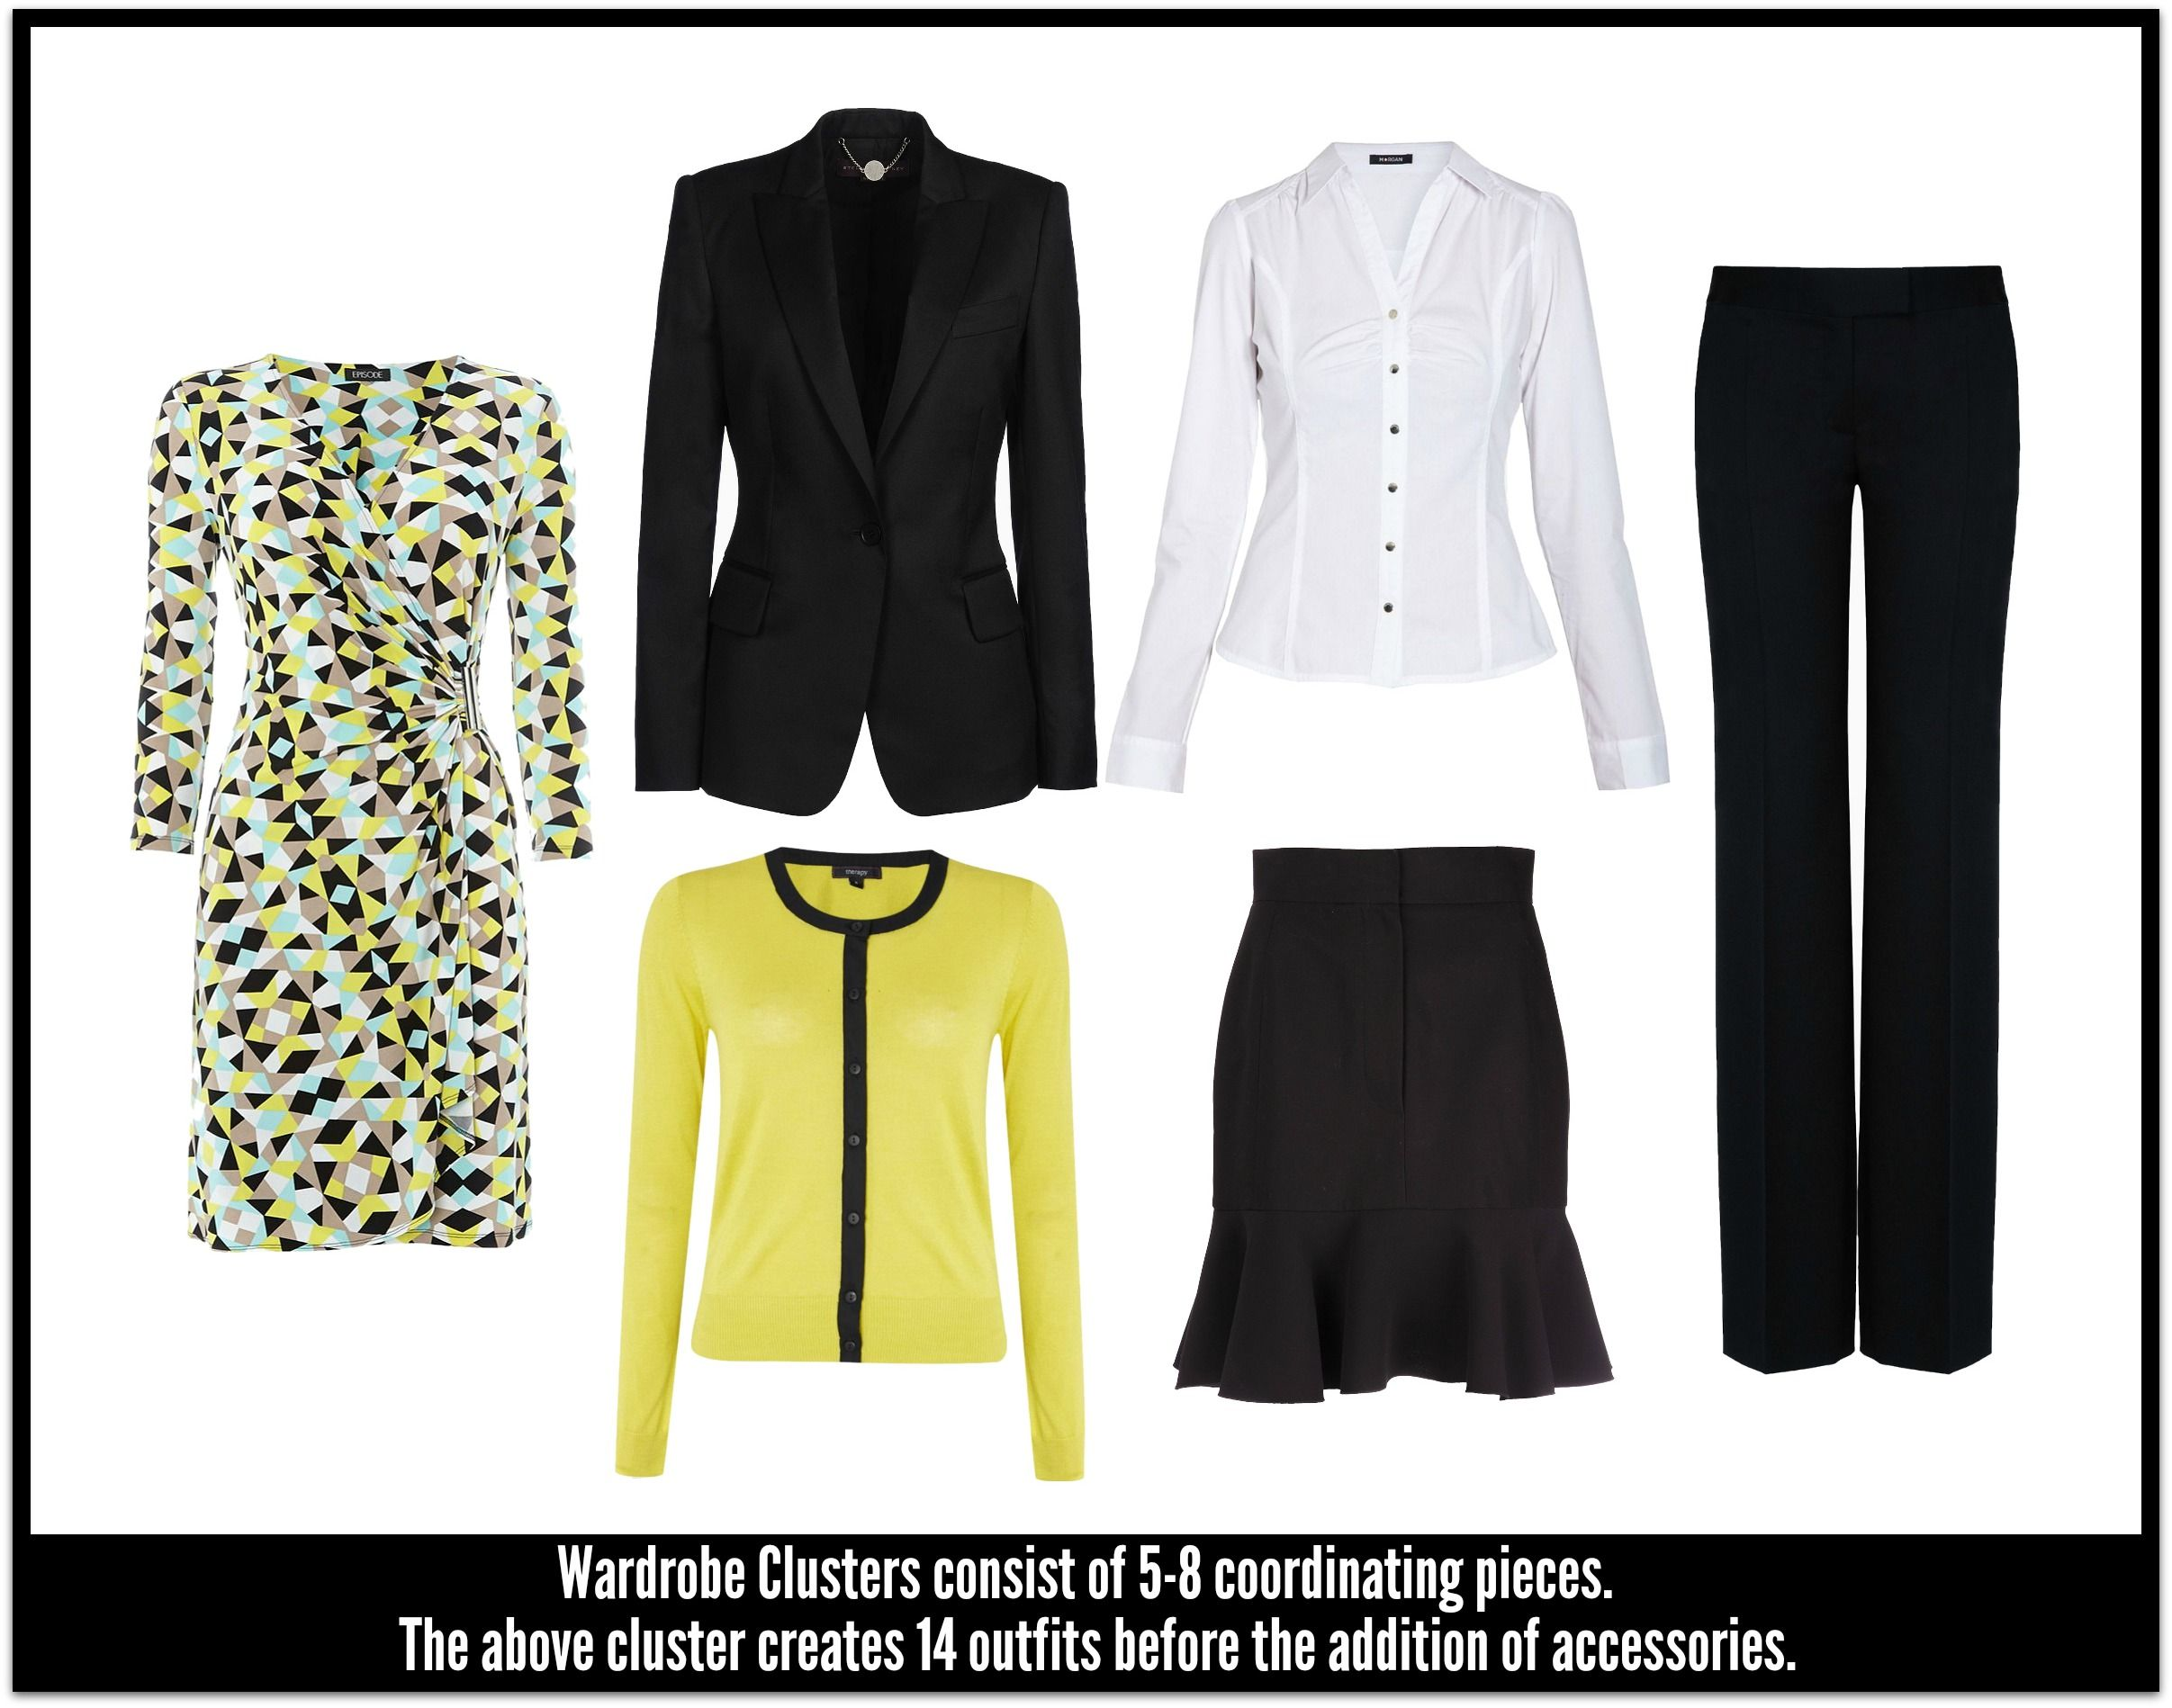 This is a good article on how to do a wardrobe cluster called the